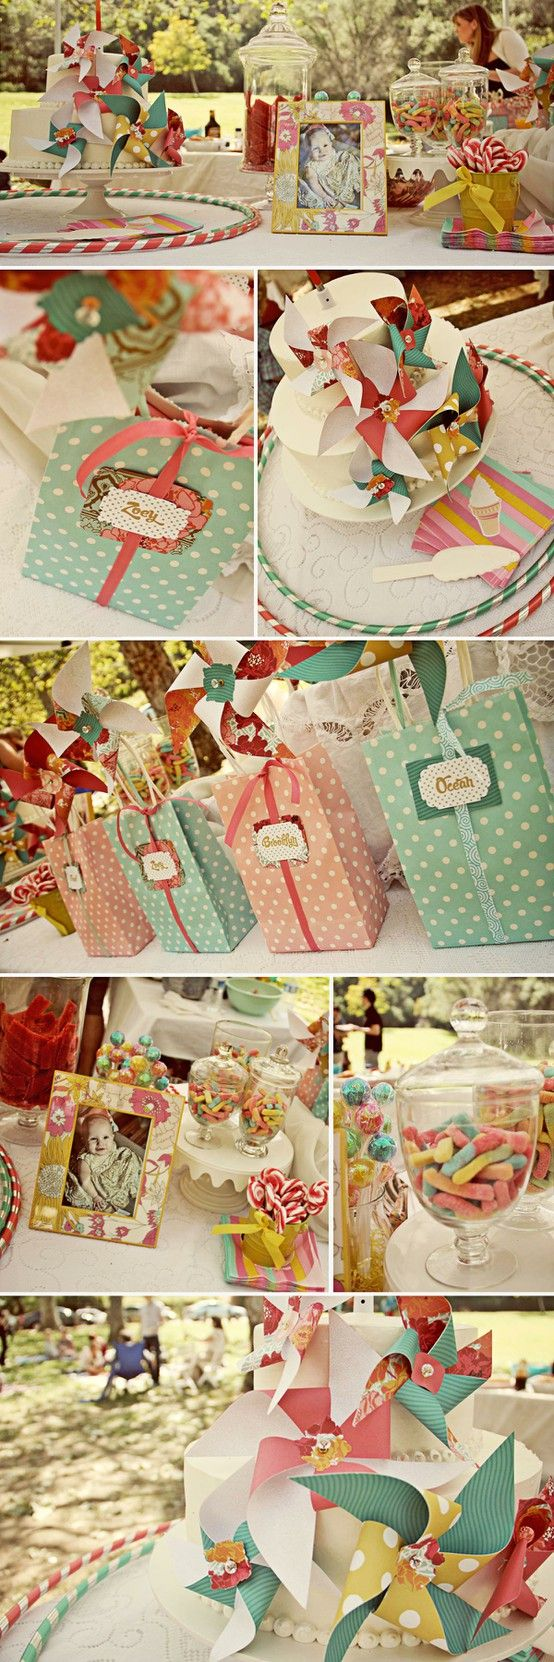 <3 the vintage look. planning the party now so that I can incorporate these ideas